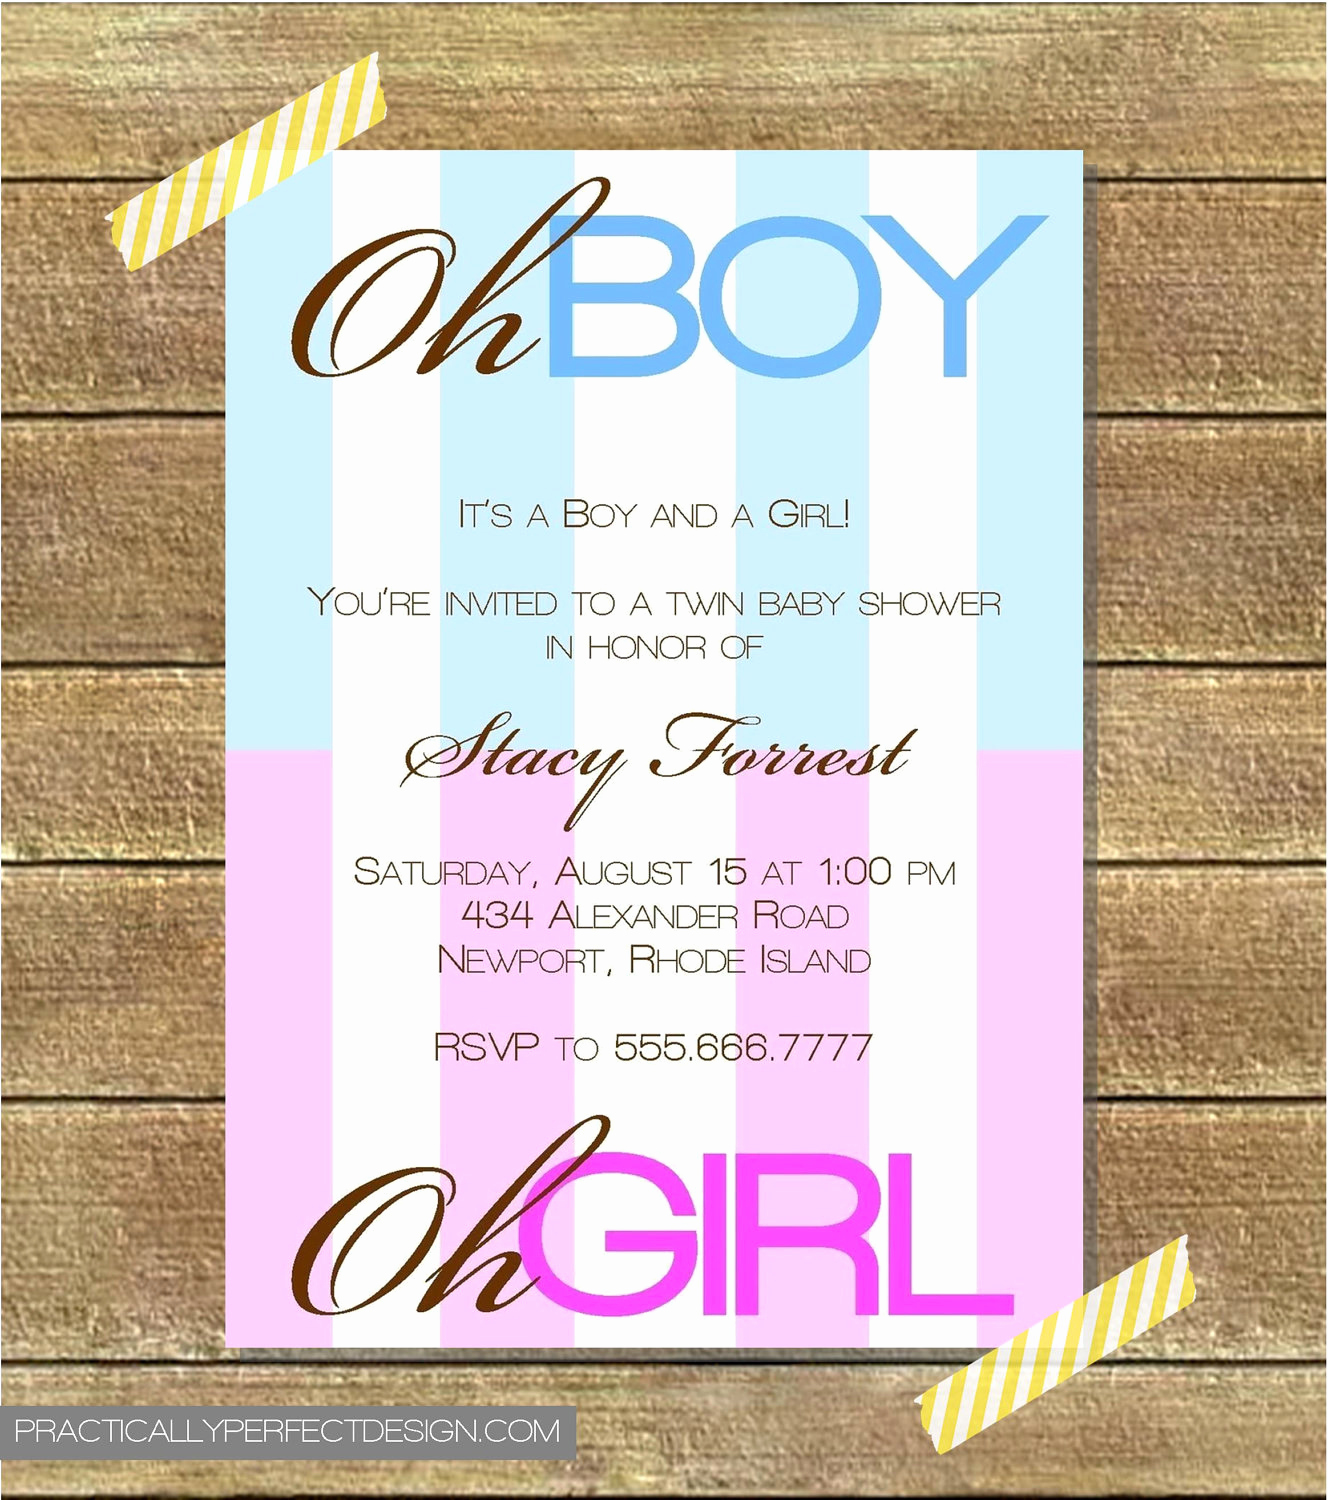 twin baby shower invitation boy and girl